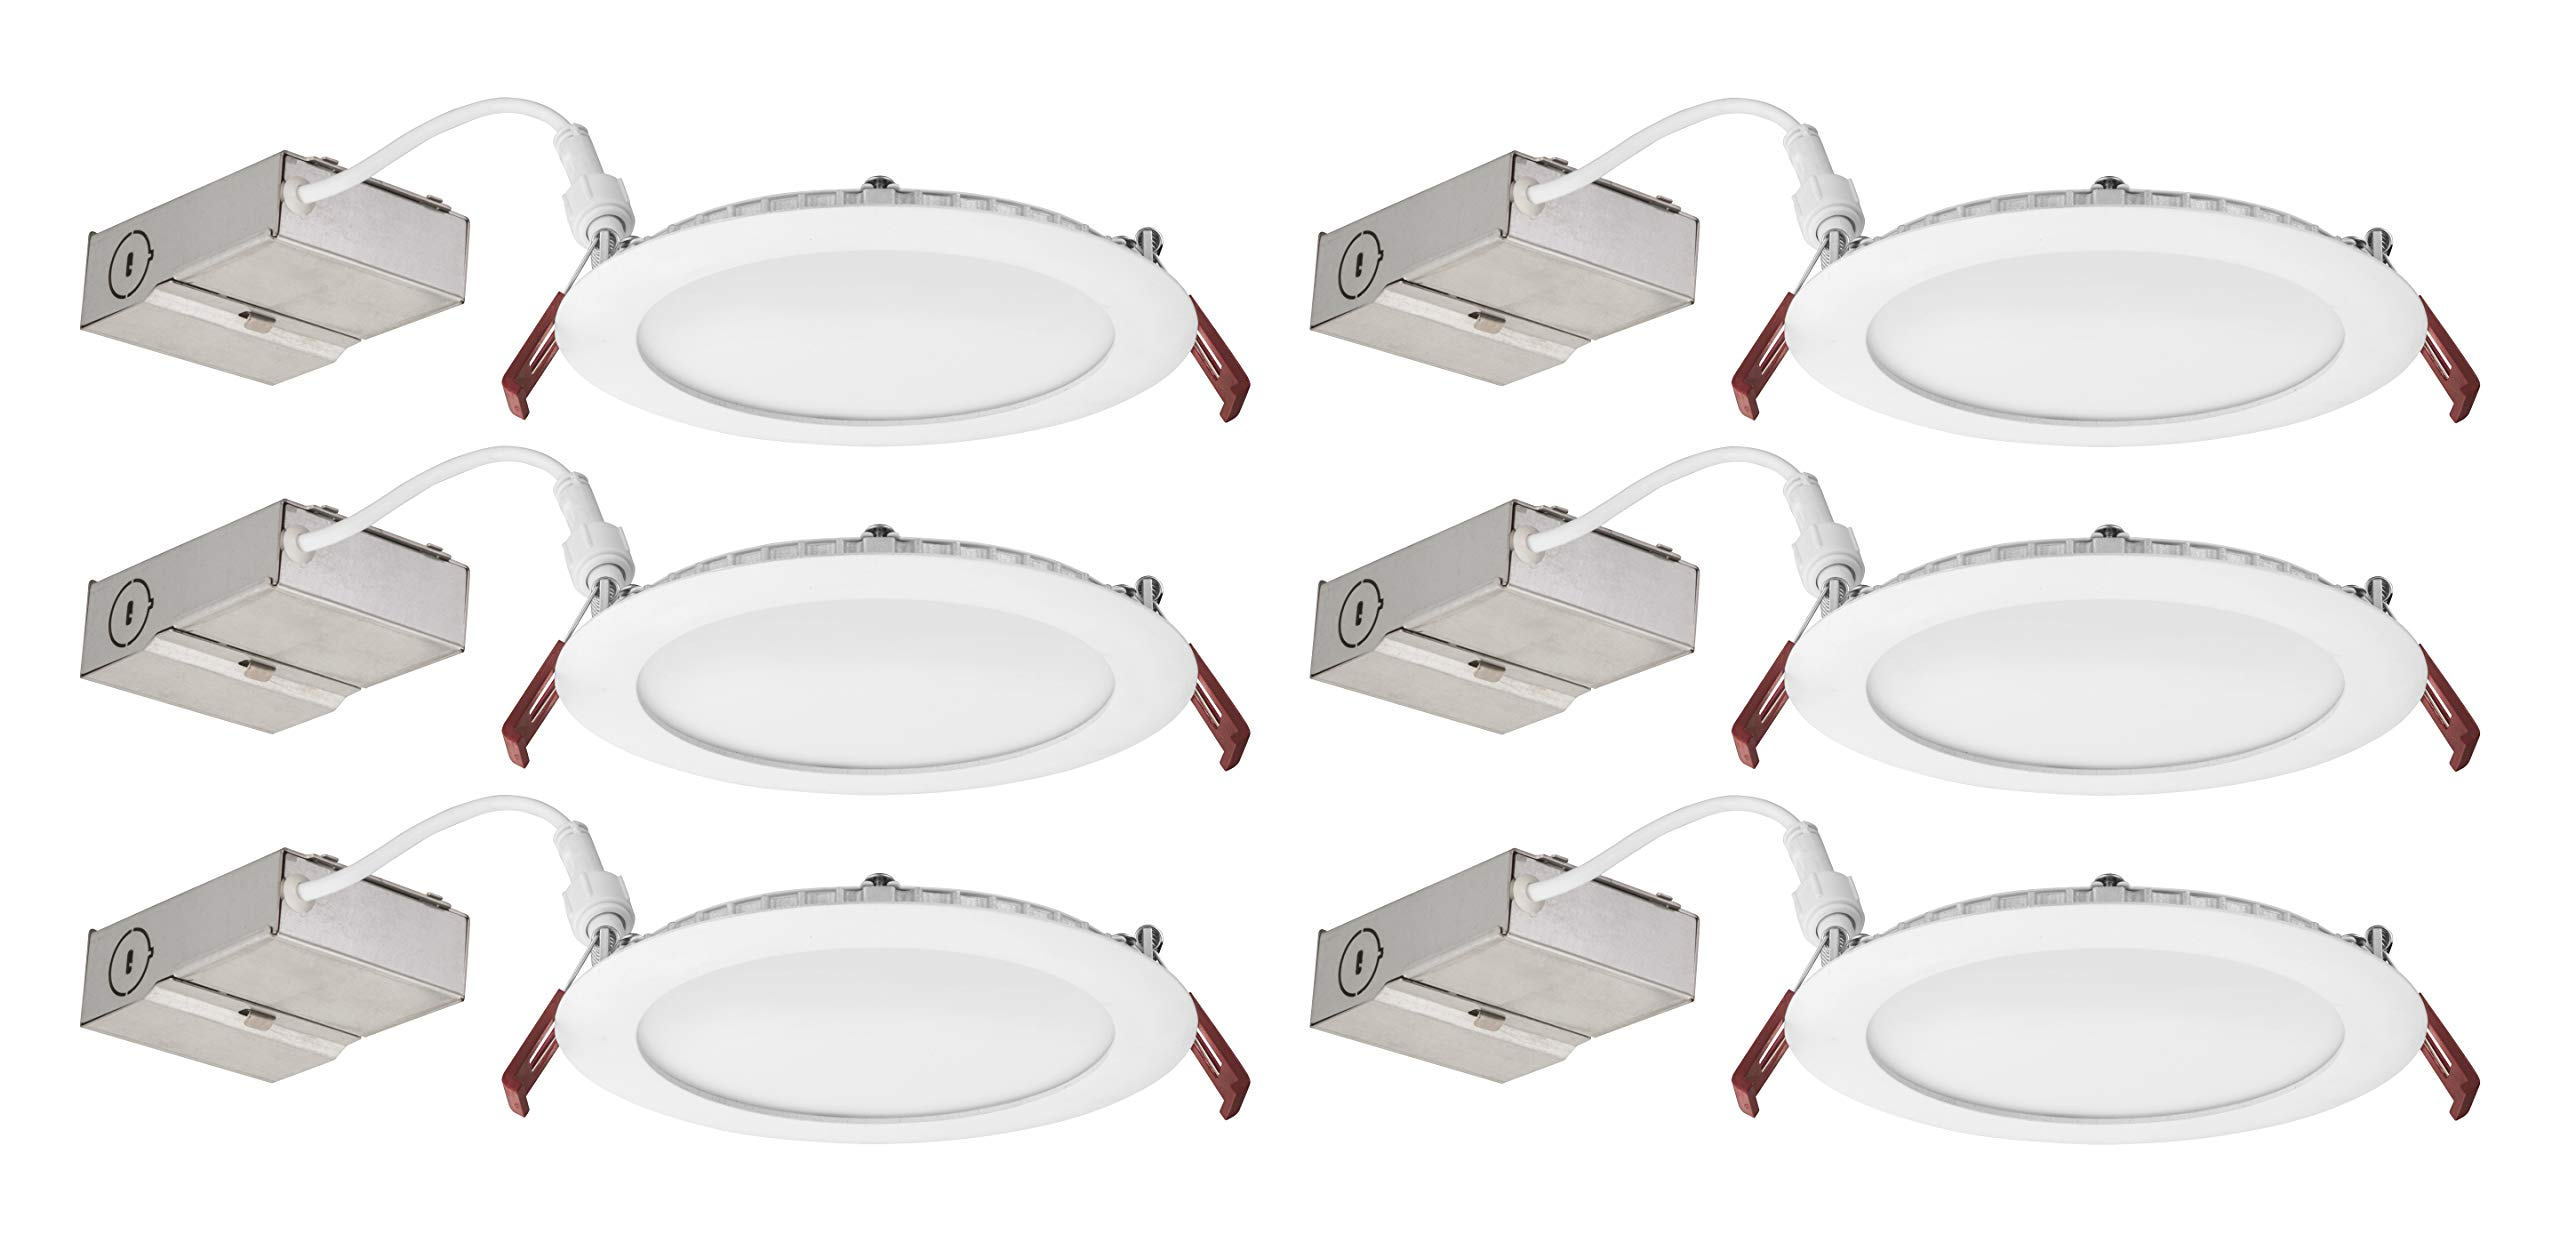 Lithonia Lighting WF6 LED 30K 80CRI MW CASEPACK6 Recessed Light 6 Inch White